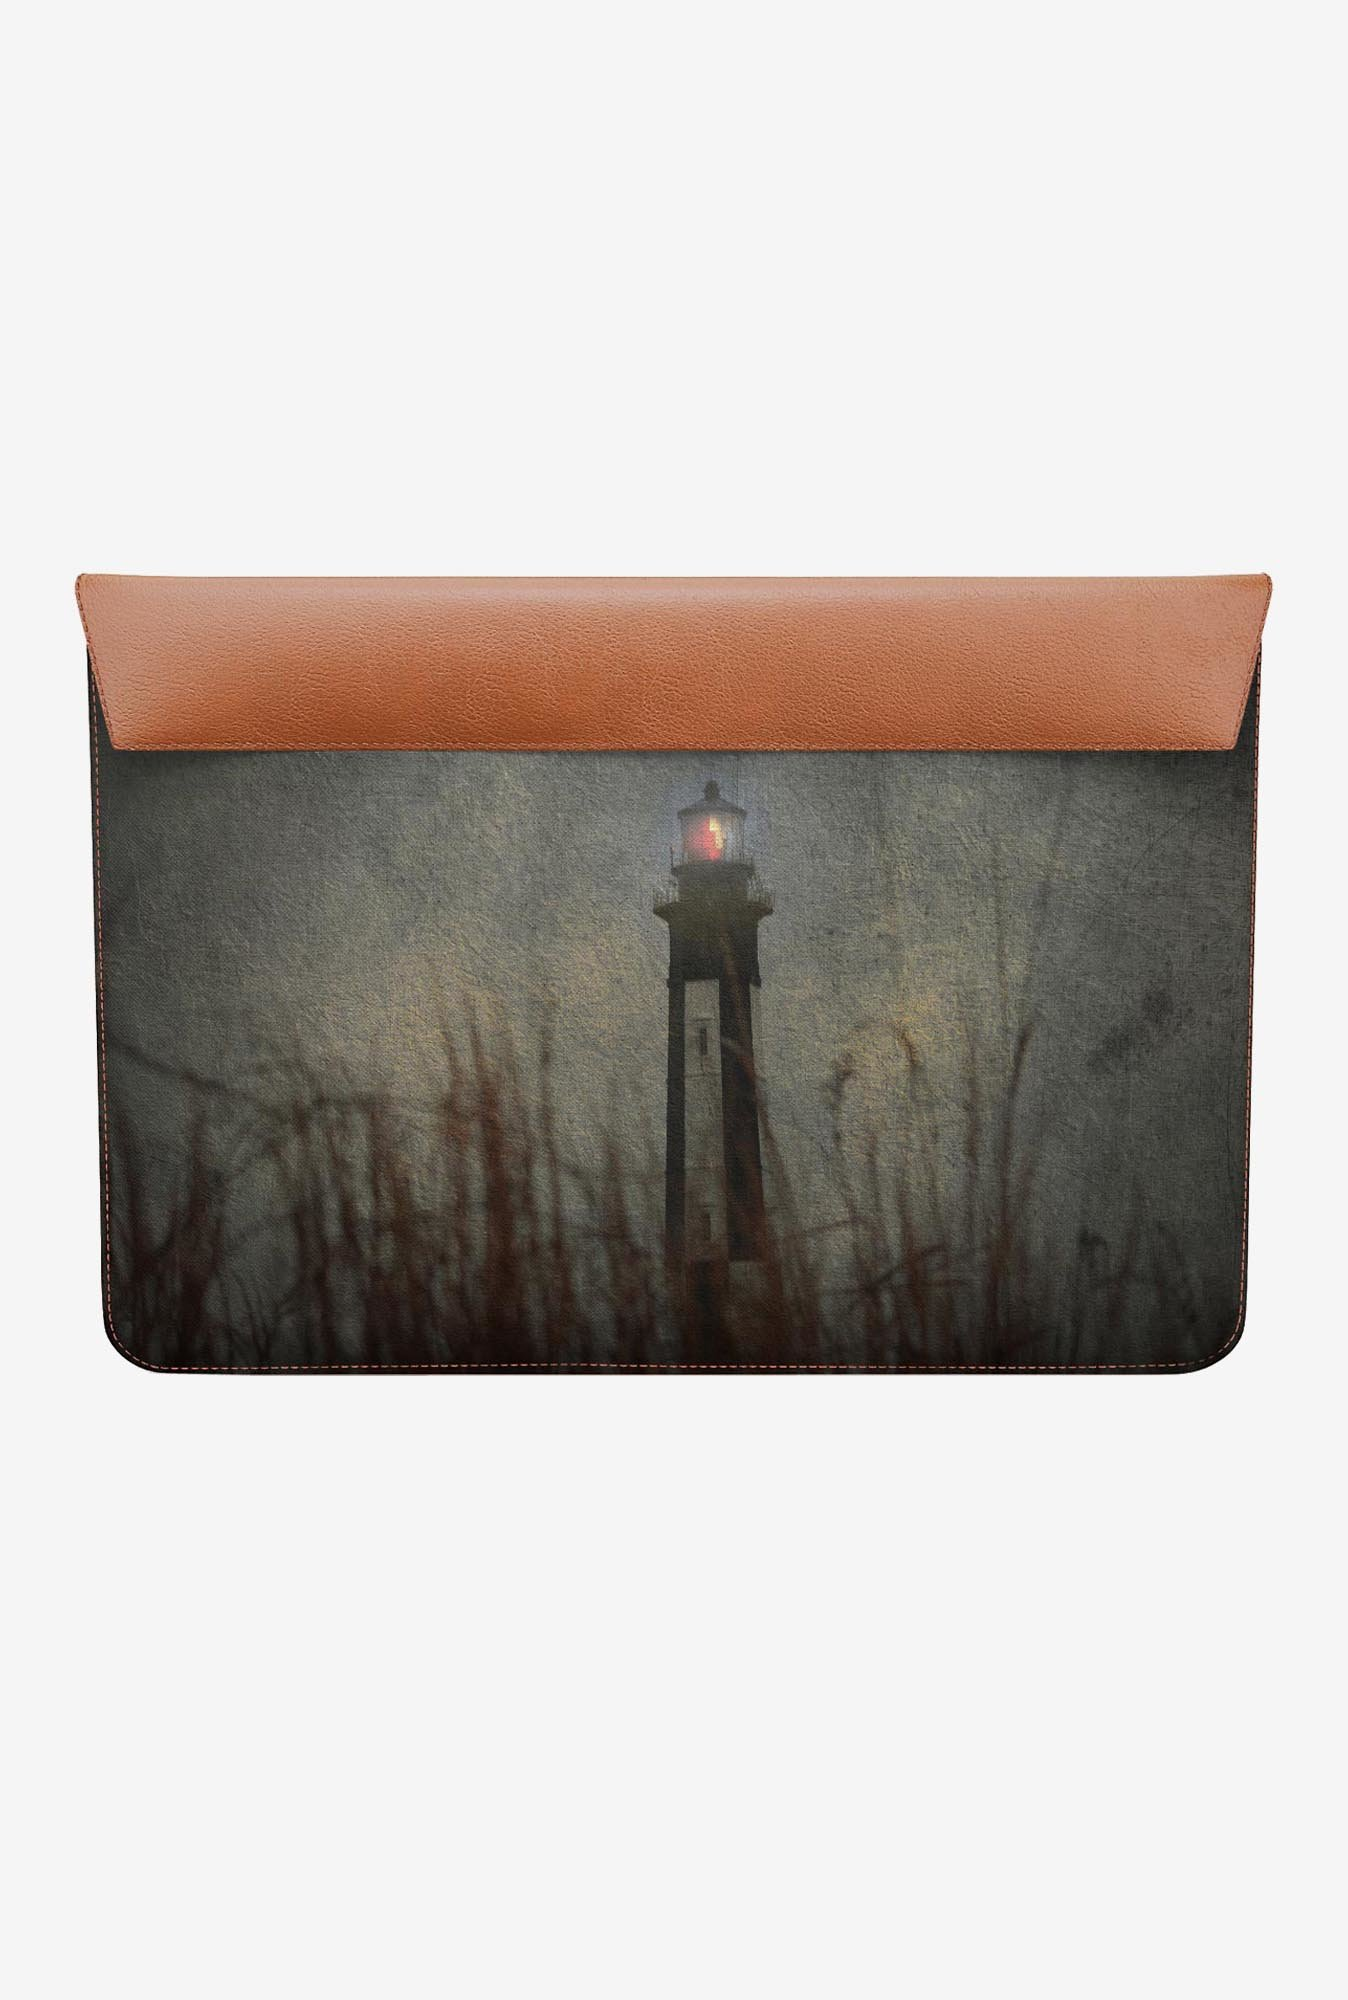 DailyObjects Stand And Shine MacBook Air 11 Envelope Sleeve